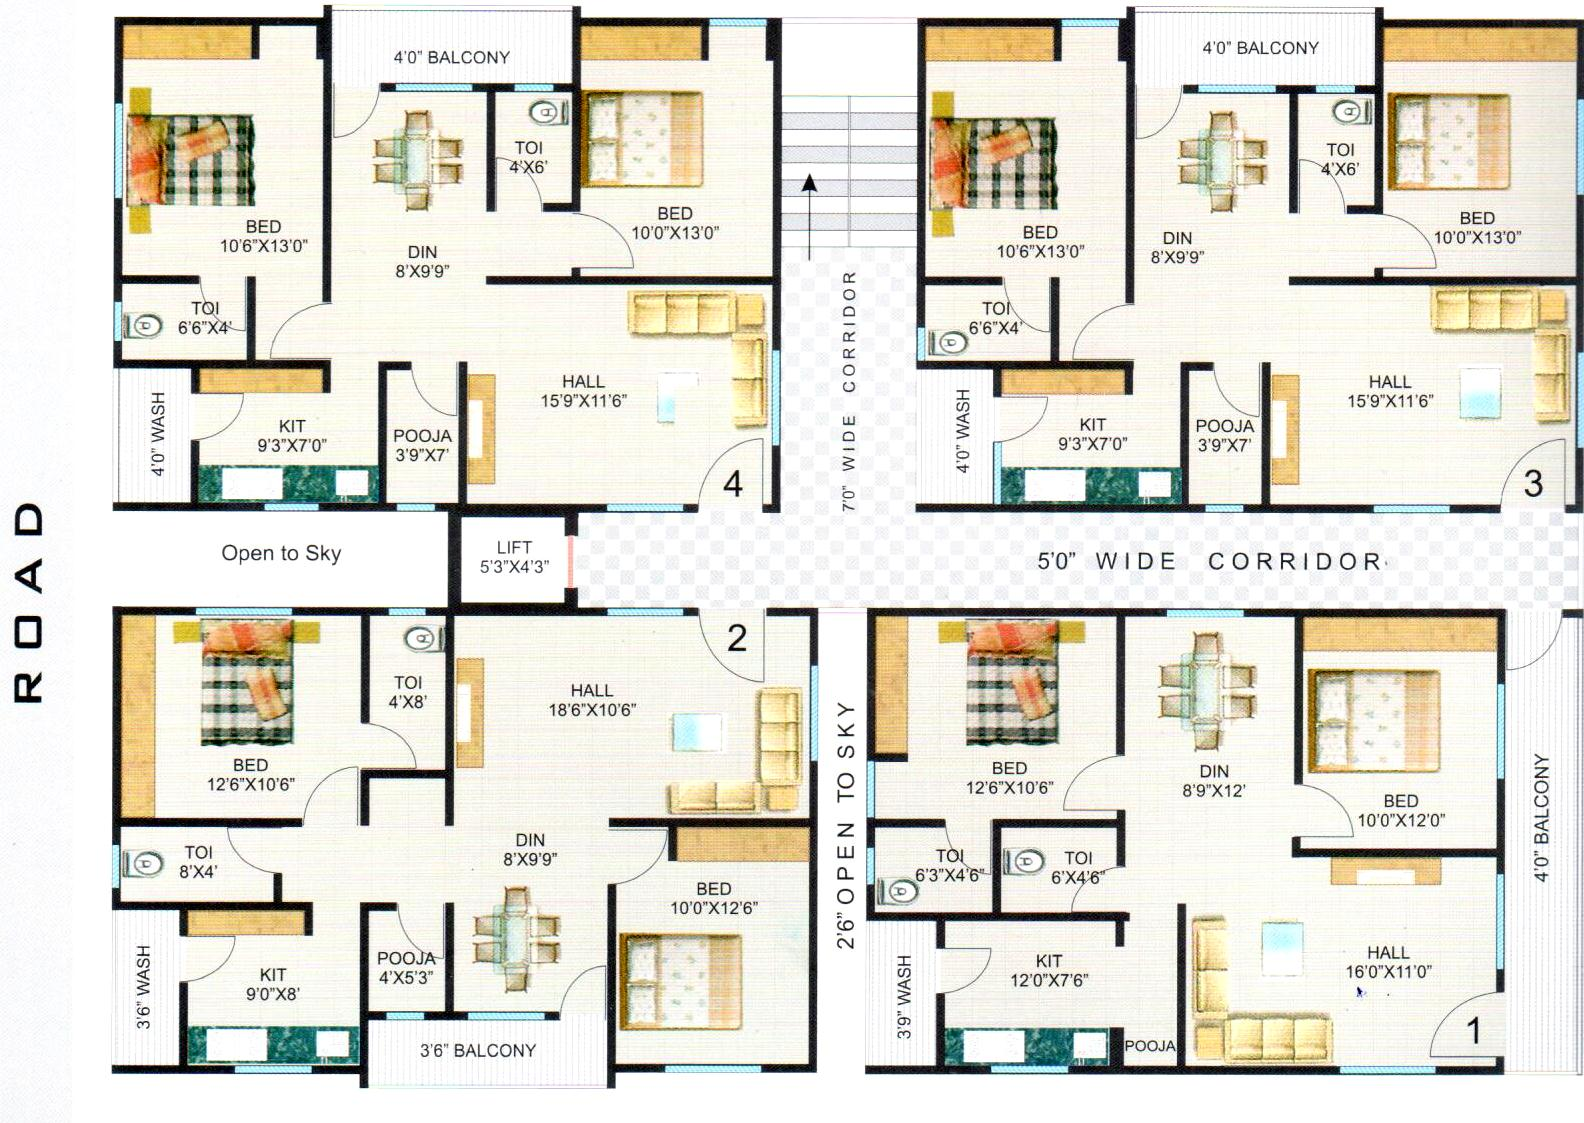 Hari hara heights floor plan hari hara heights nizampet 4 floor apartment plan